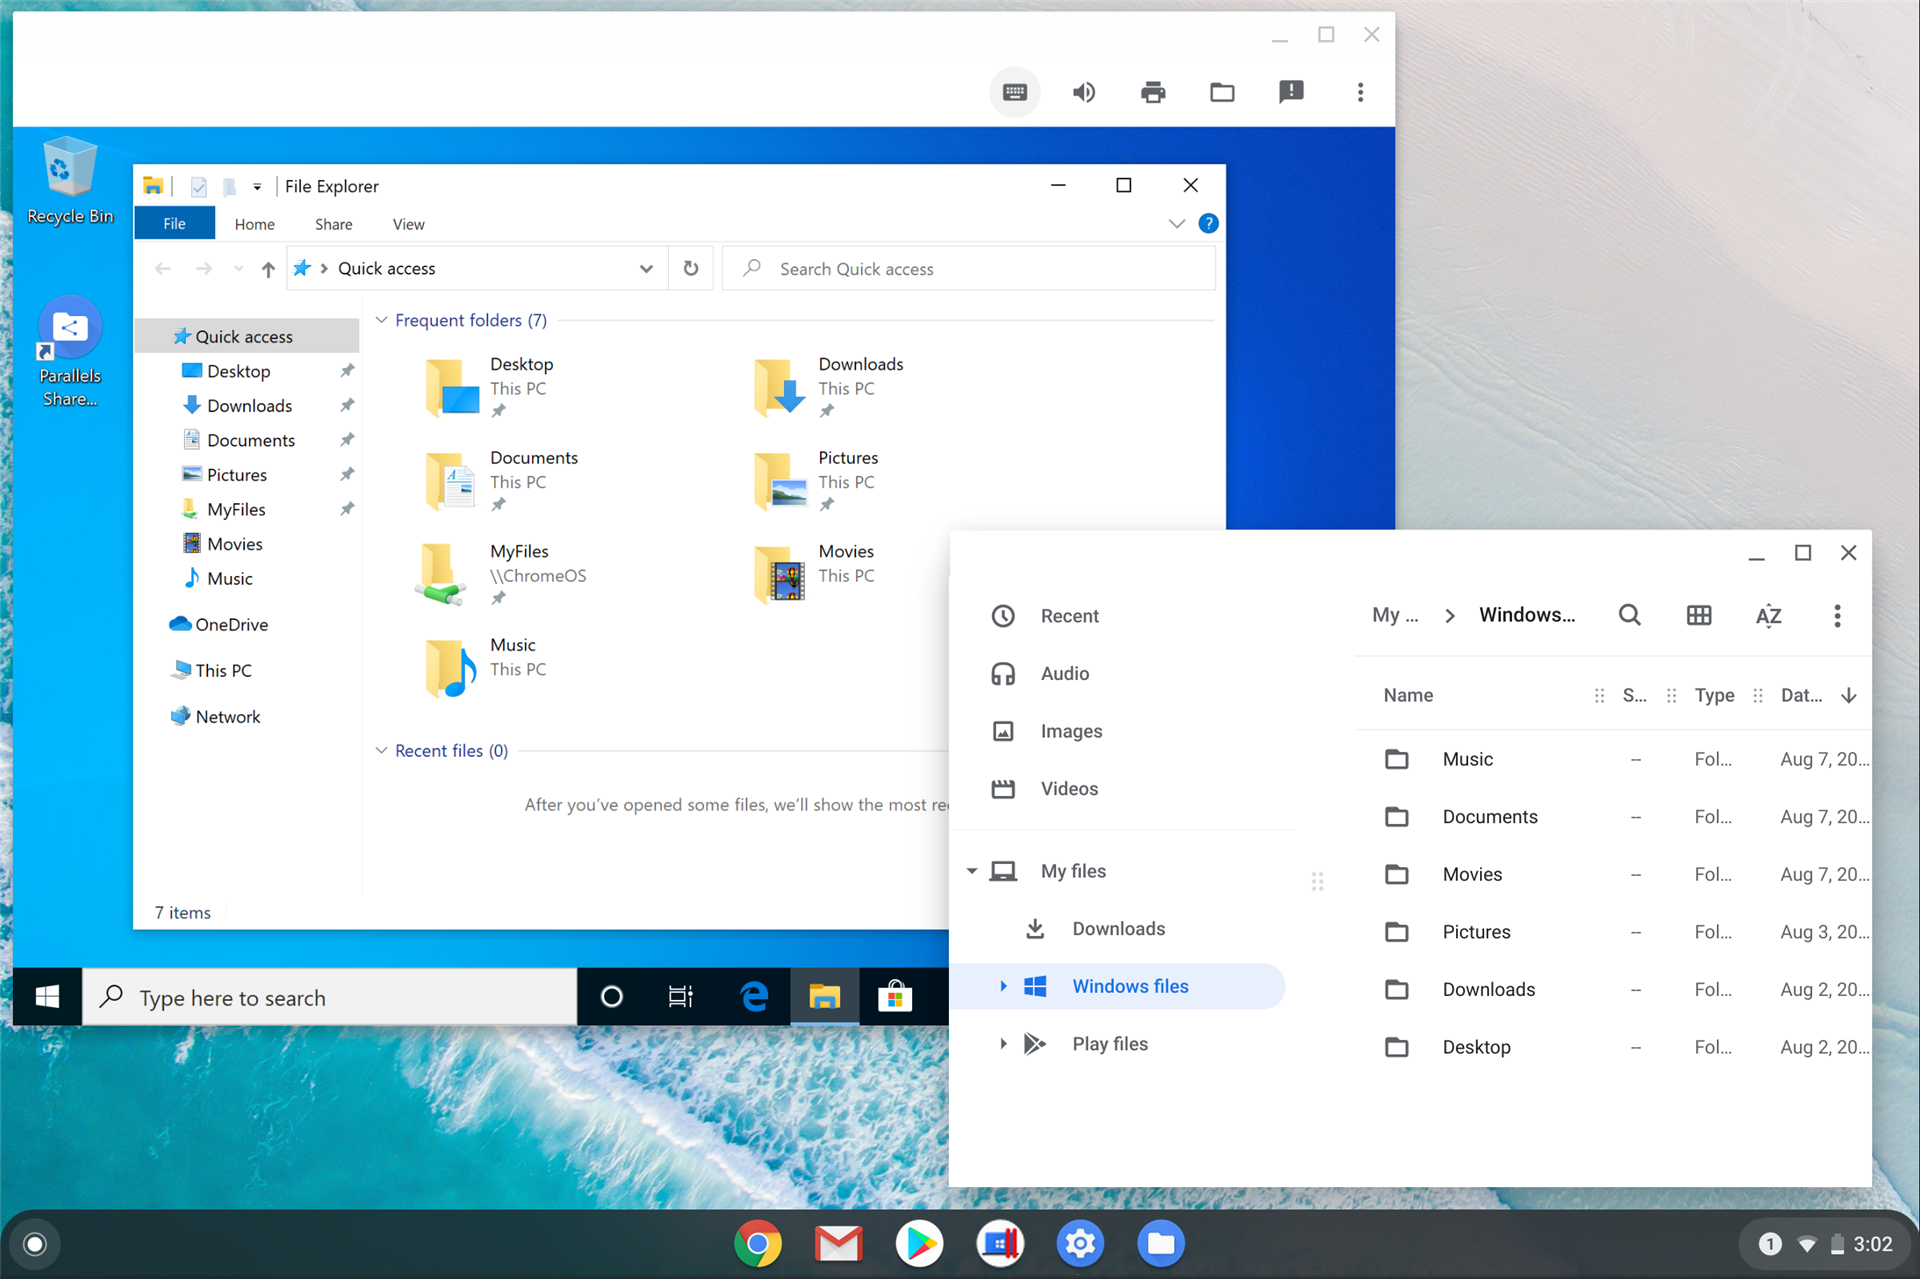 Parallels with shared files between Windows and Chrome OS